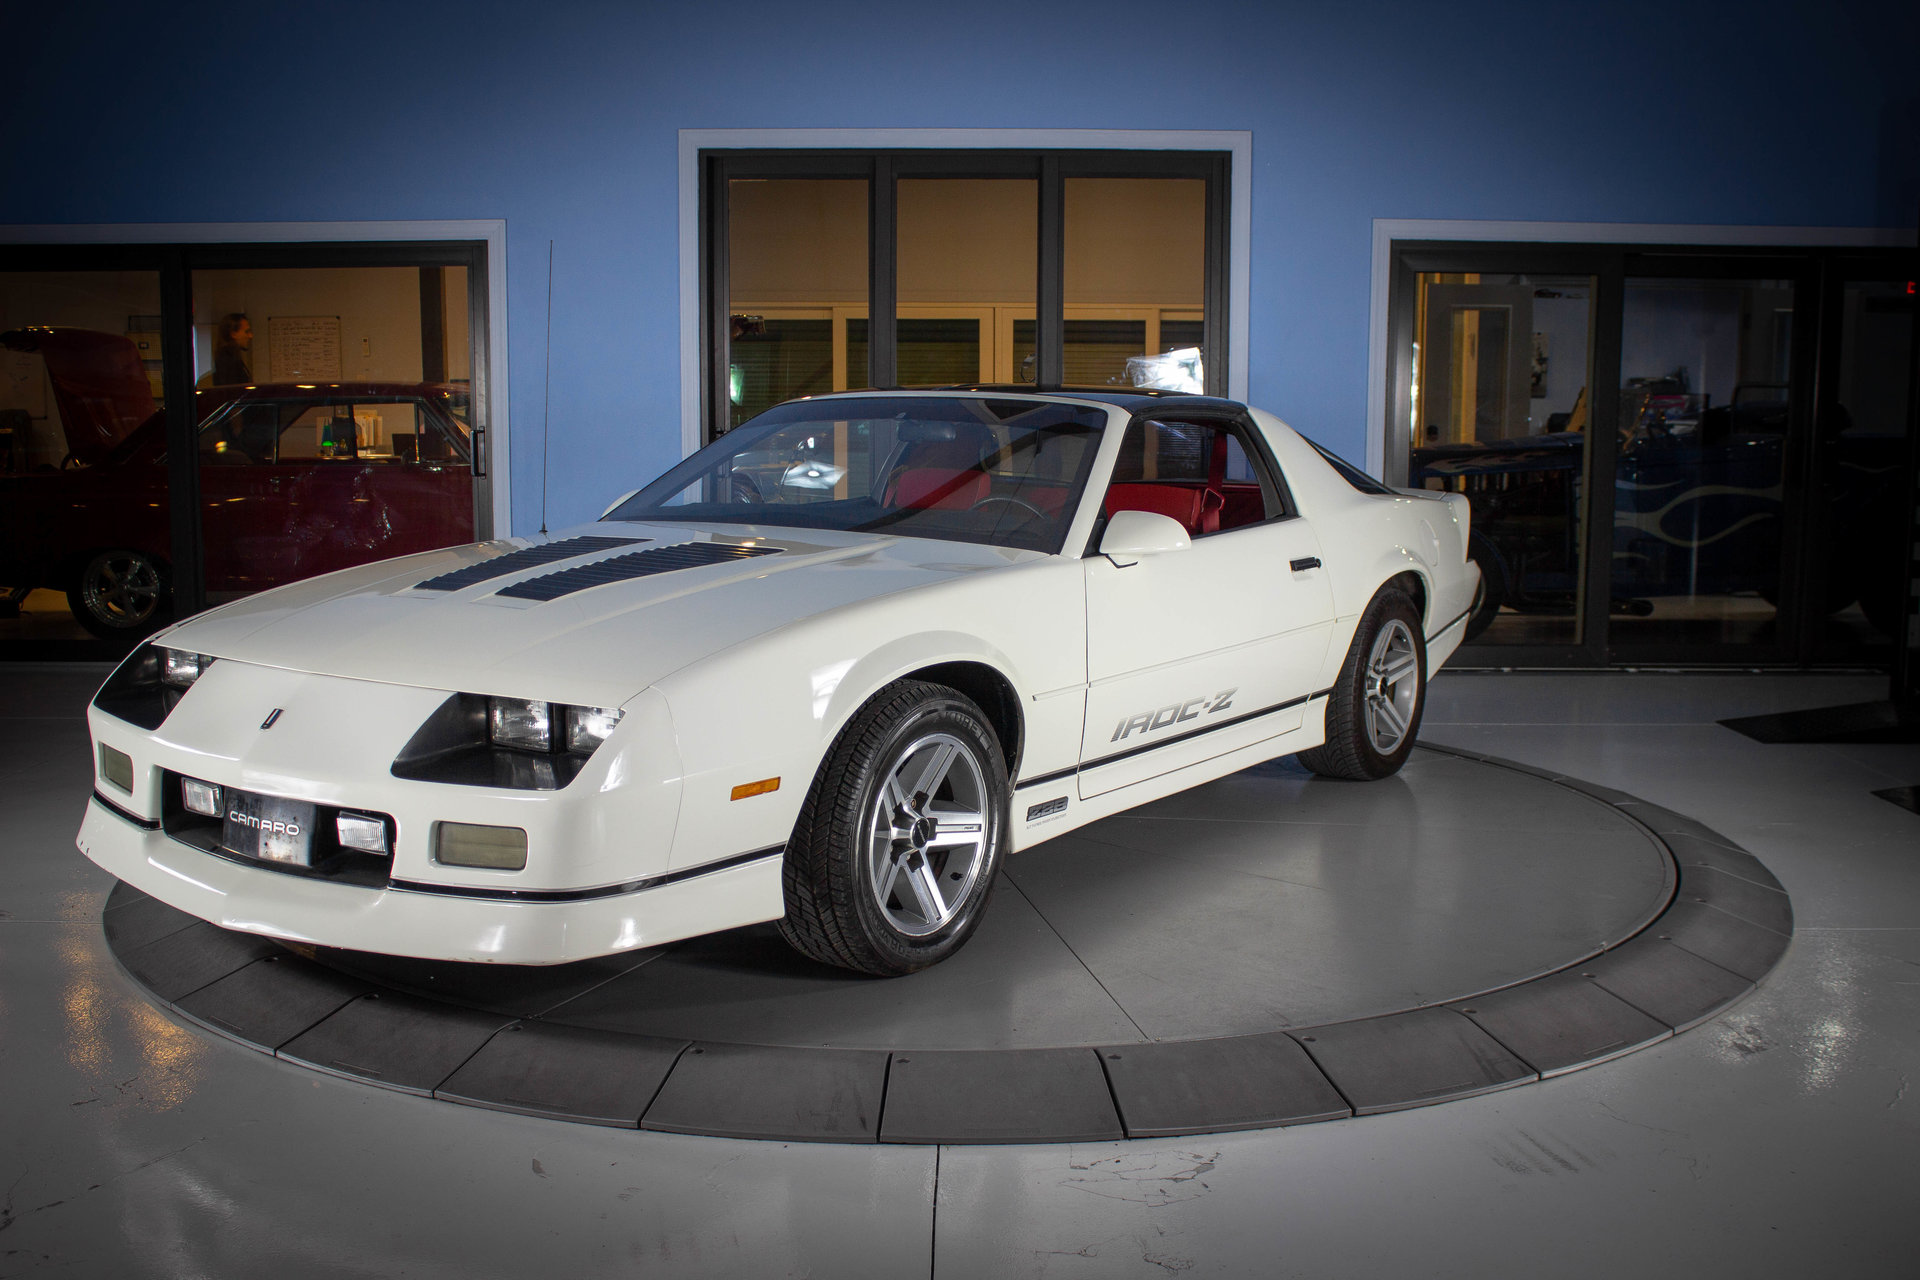 1987 chevrolet camaro classic cars used cars for sale in tampa fl. Black Bedroom Furniture Sets. Home Design Ideas